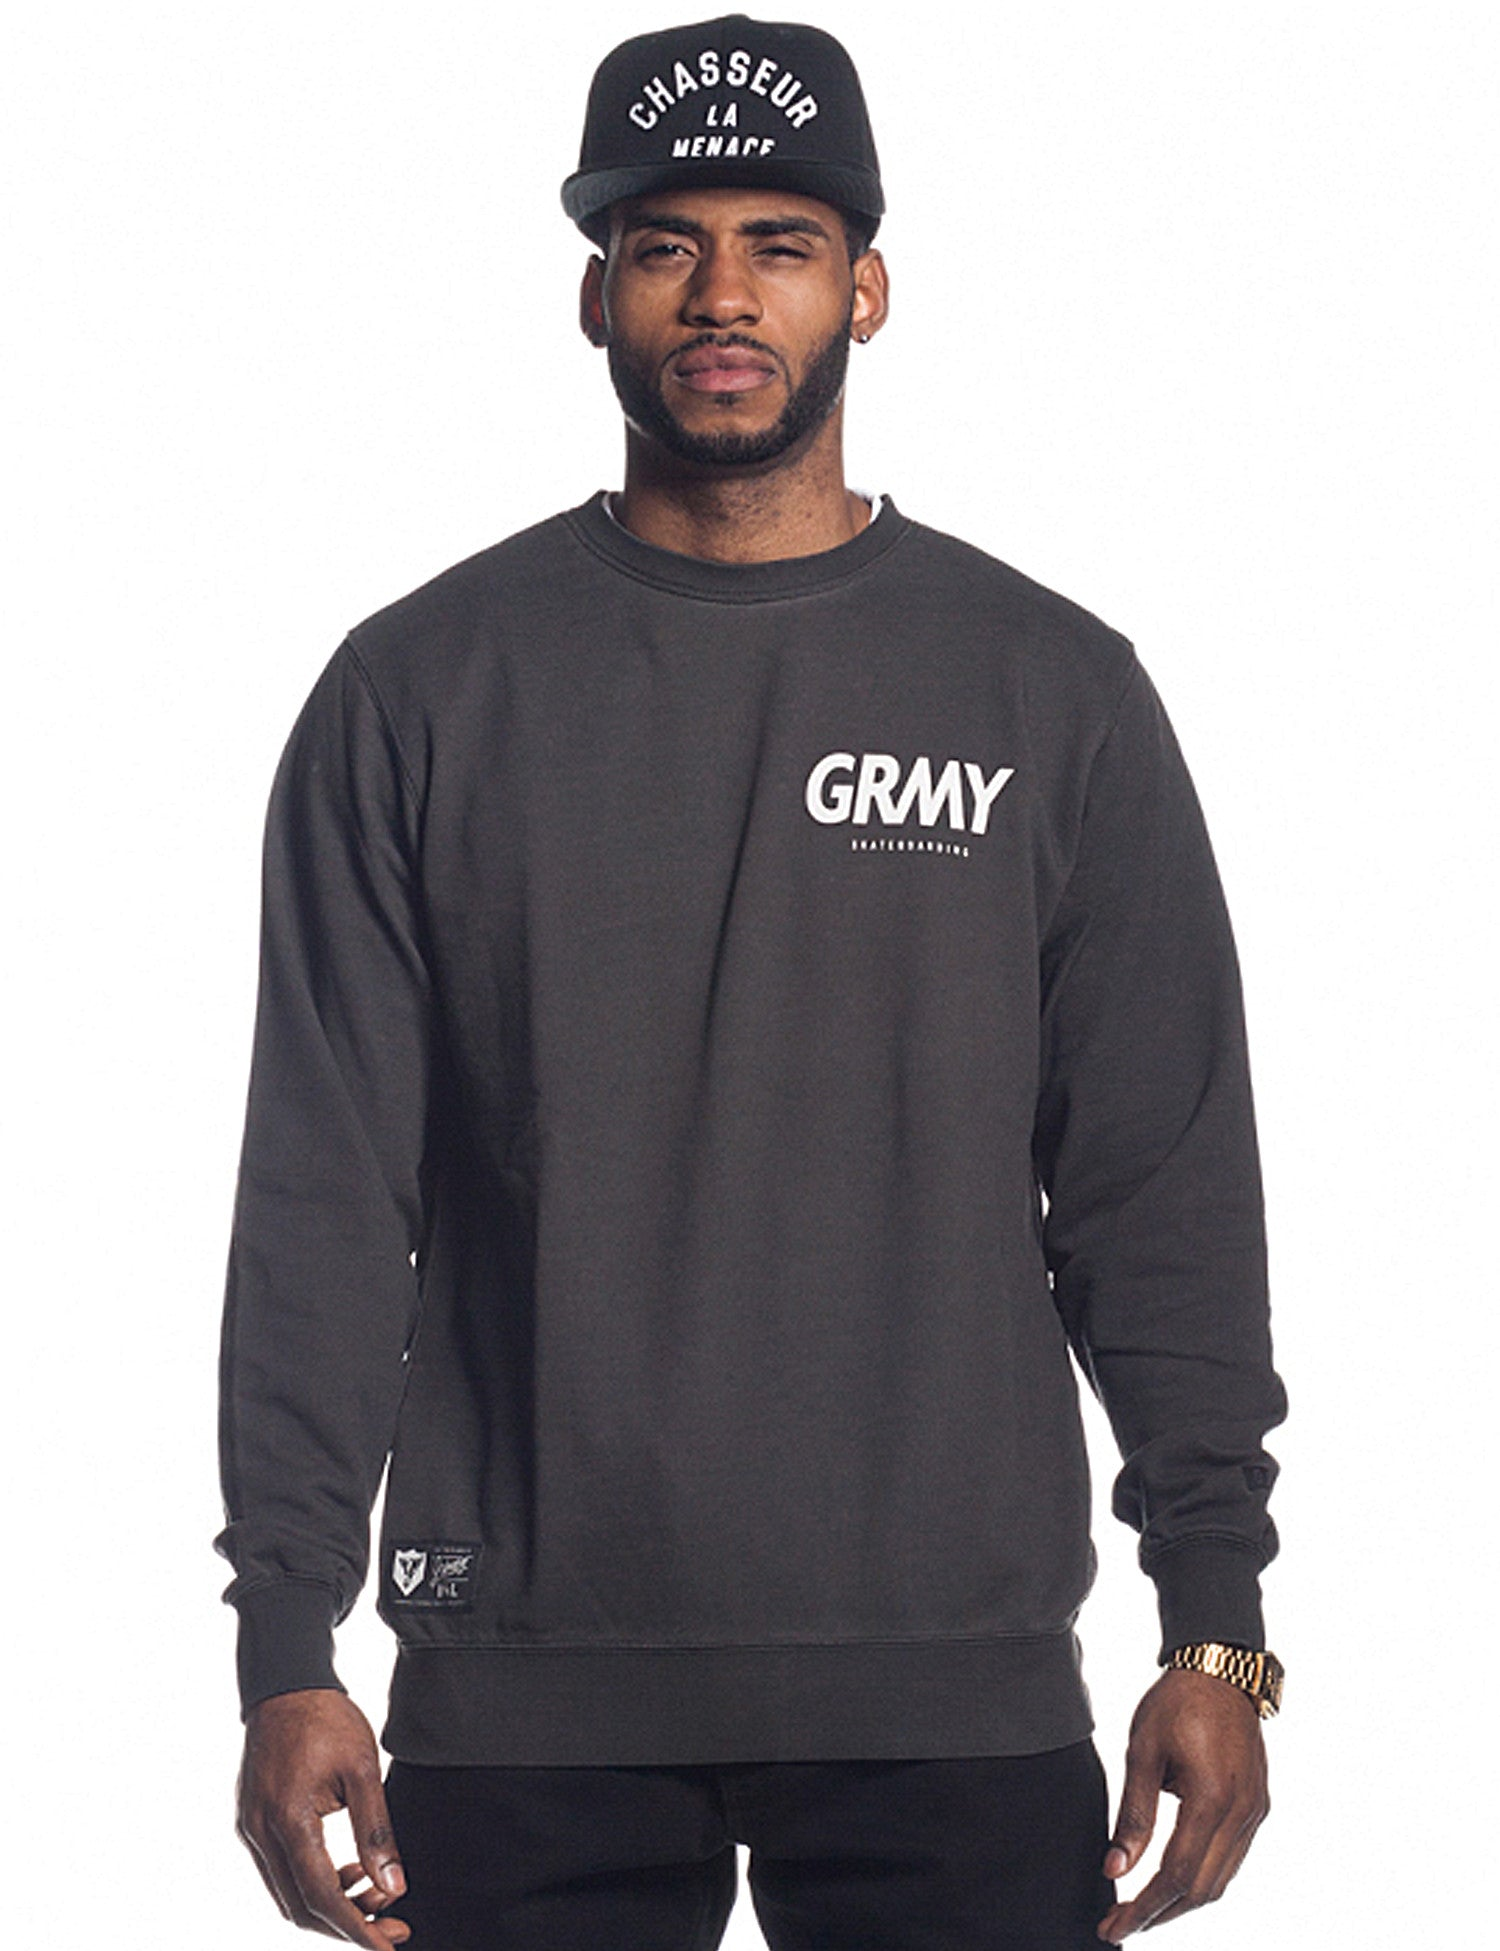 Grimey Hunter GRMY Crewneck GSW212 Black